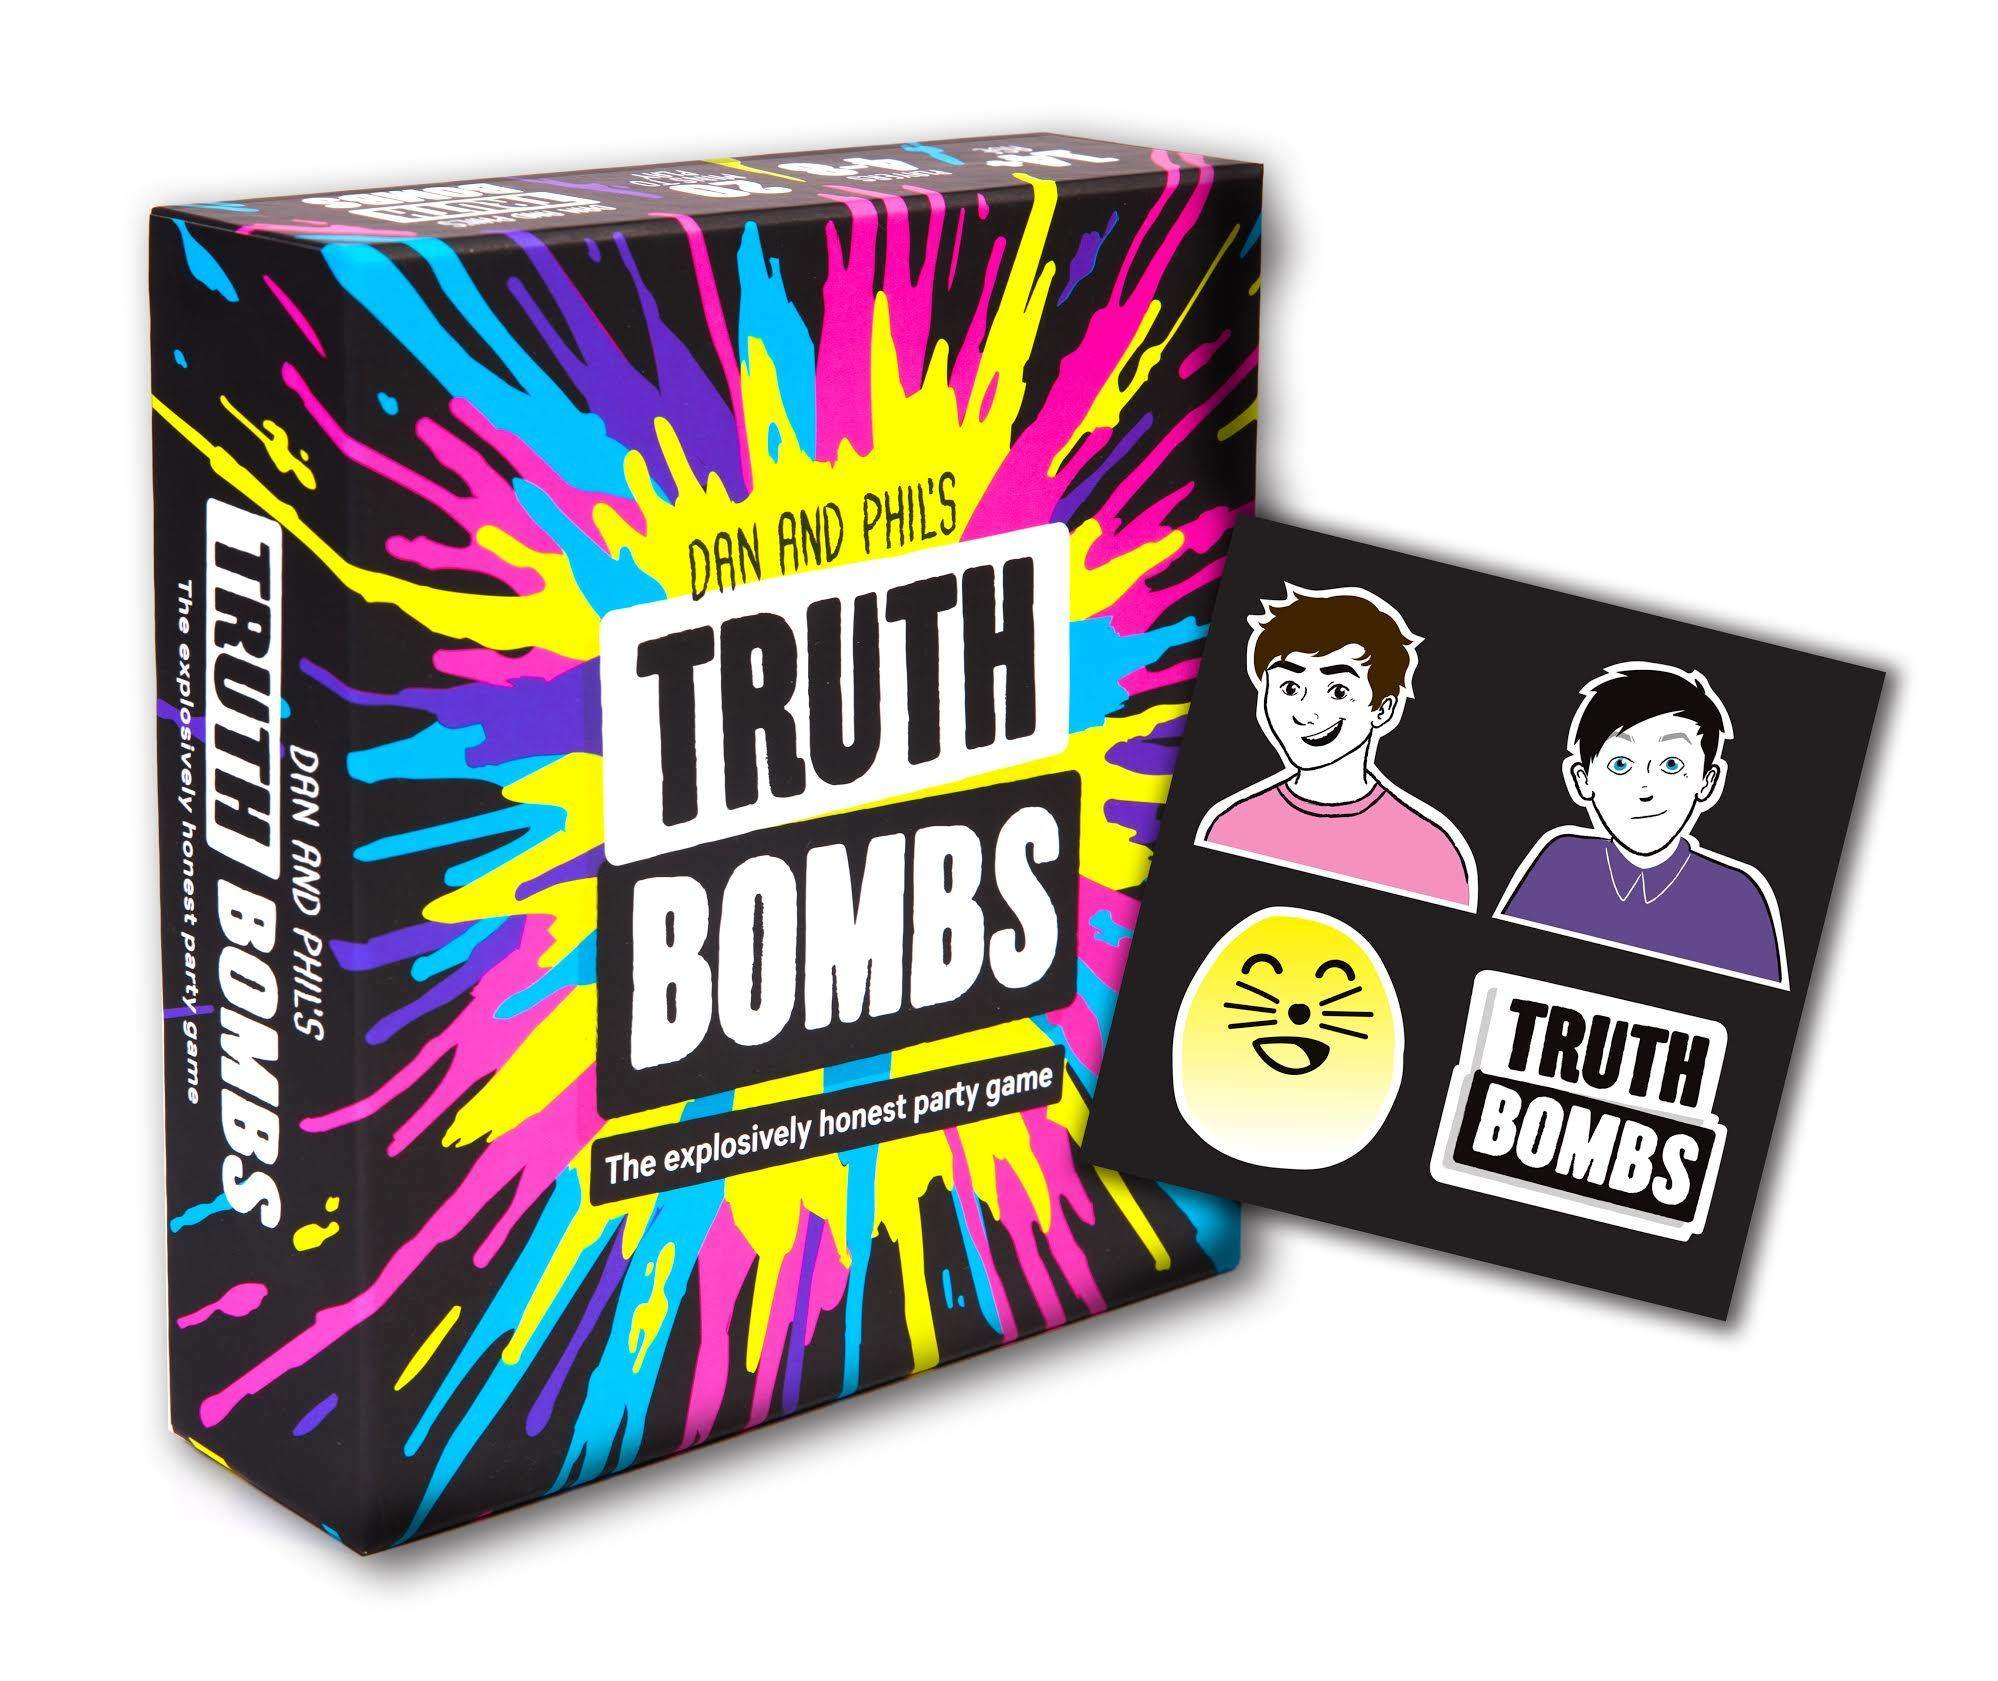 youtuber merchandise, dan and phil, truth bombs, board game